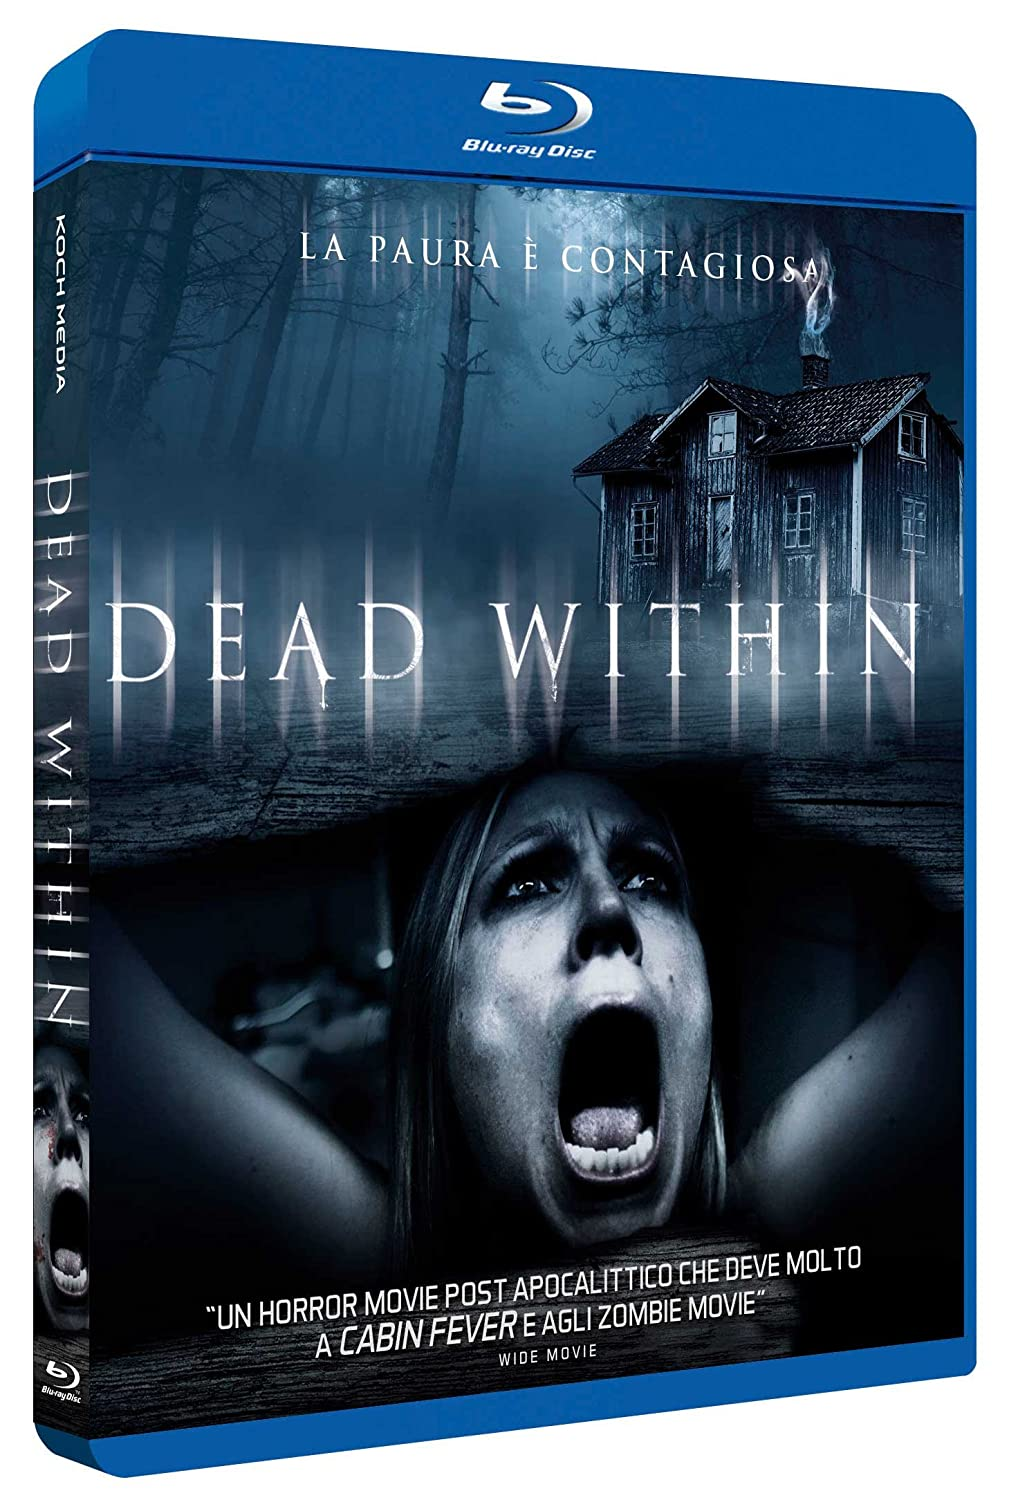 Dead Within (2014) Full Blu Ray 1:1 AVC ITA DTS HD-MA  5.1